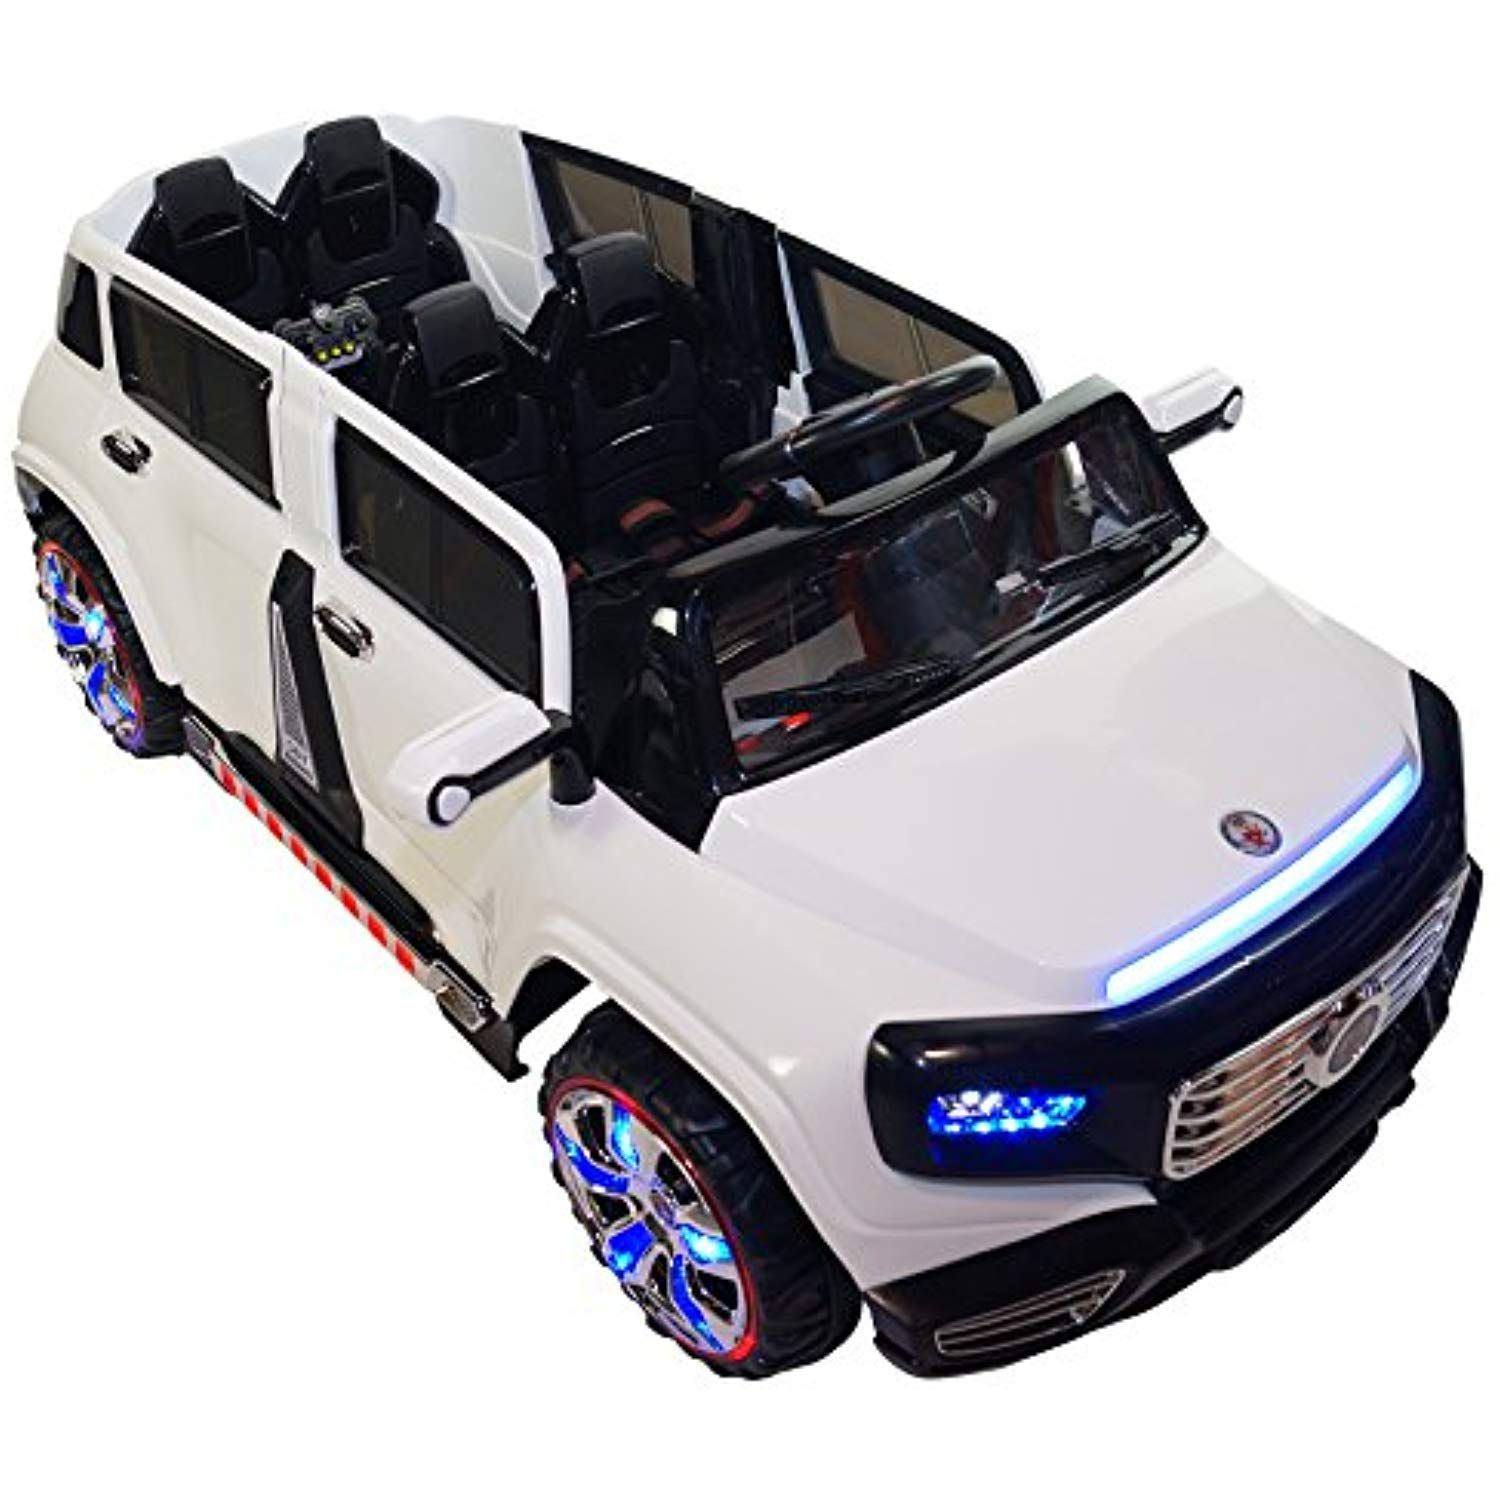 Two Seater 4 Door Premium Ride On Electric Toy Car For Kids 12v Battery Powered Led Lights Mp3 Rc Parental Toy Cars For Kids Kids Ride On Toys Toy Car